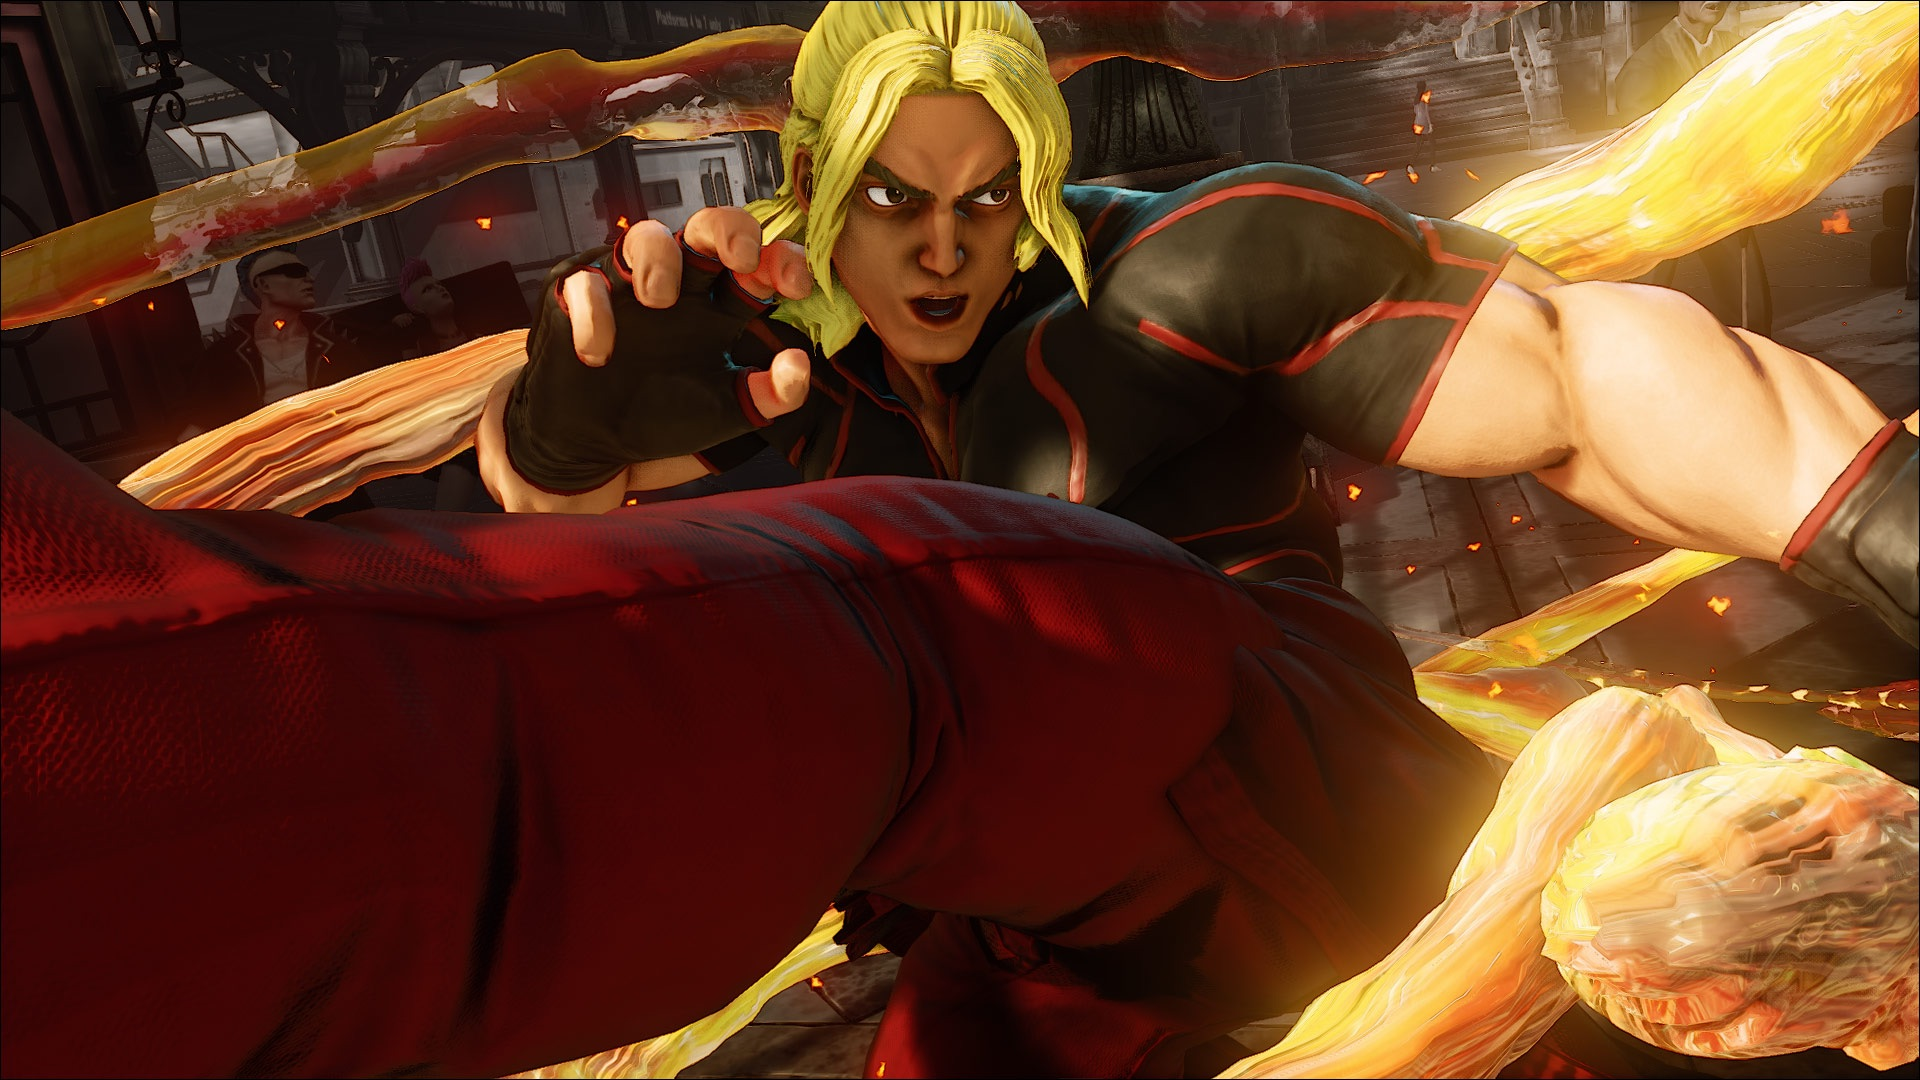 Ken Returns In Sf5 Street Fighter Know Your Meme